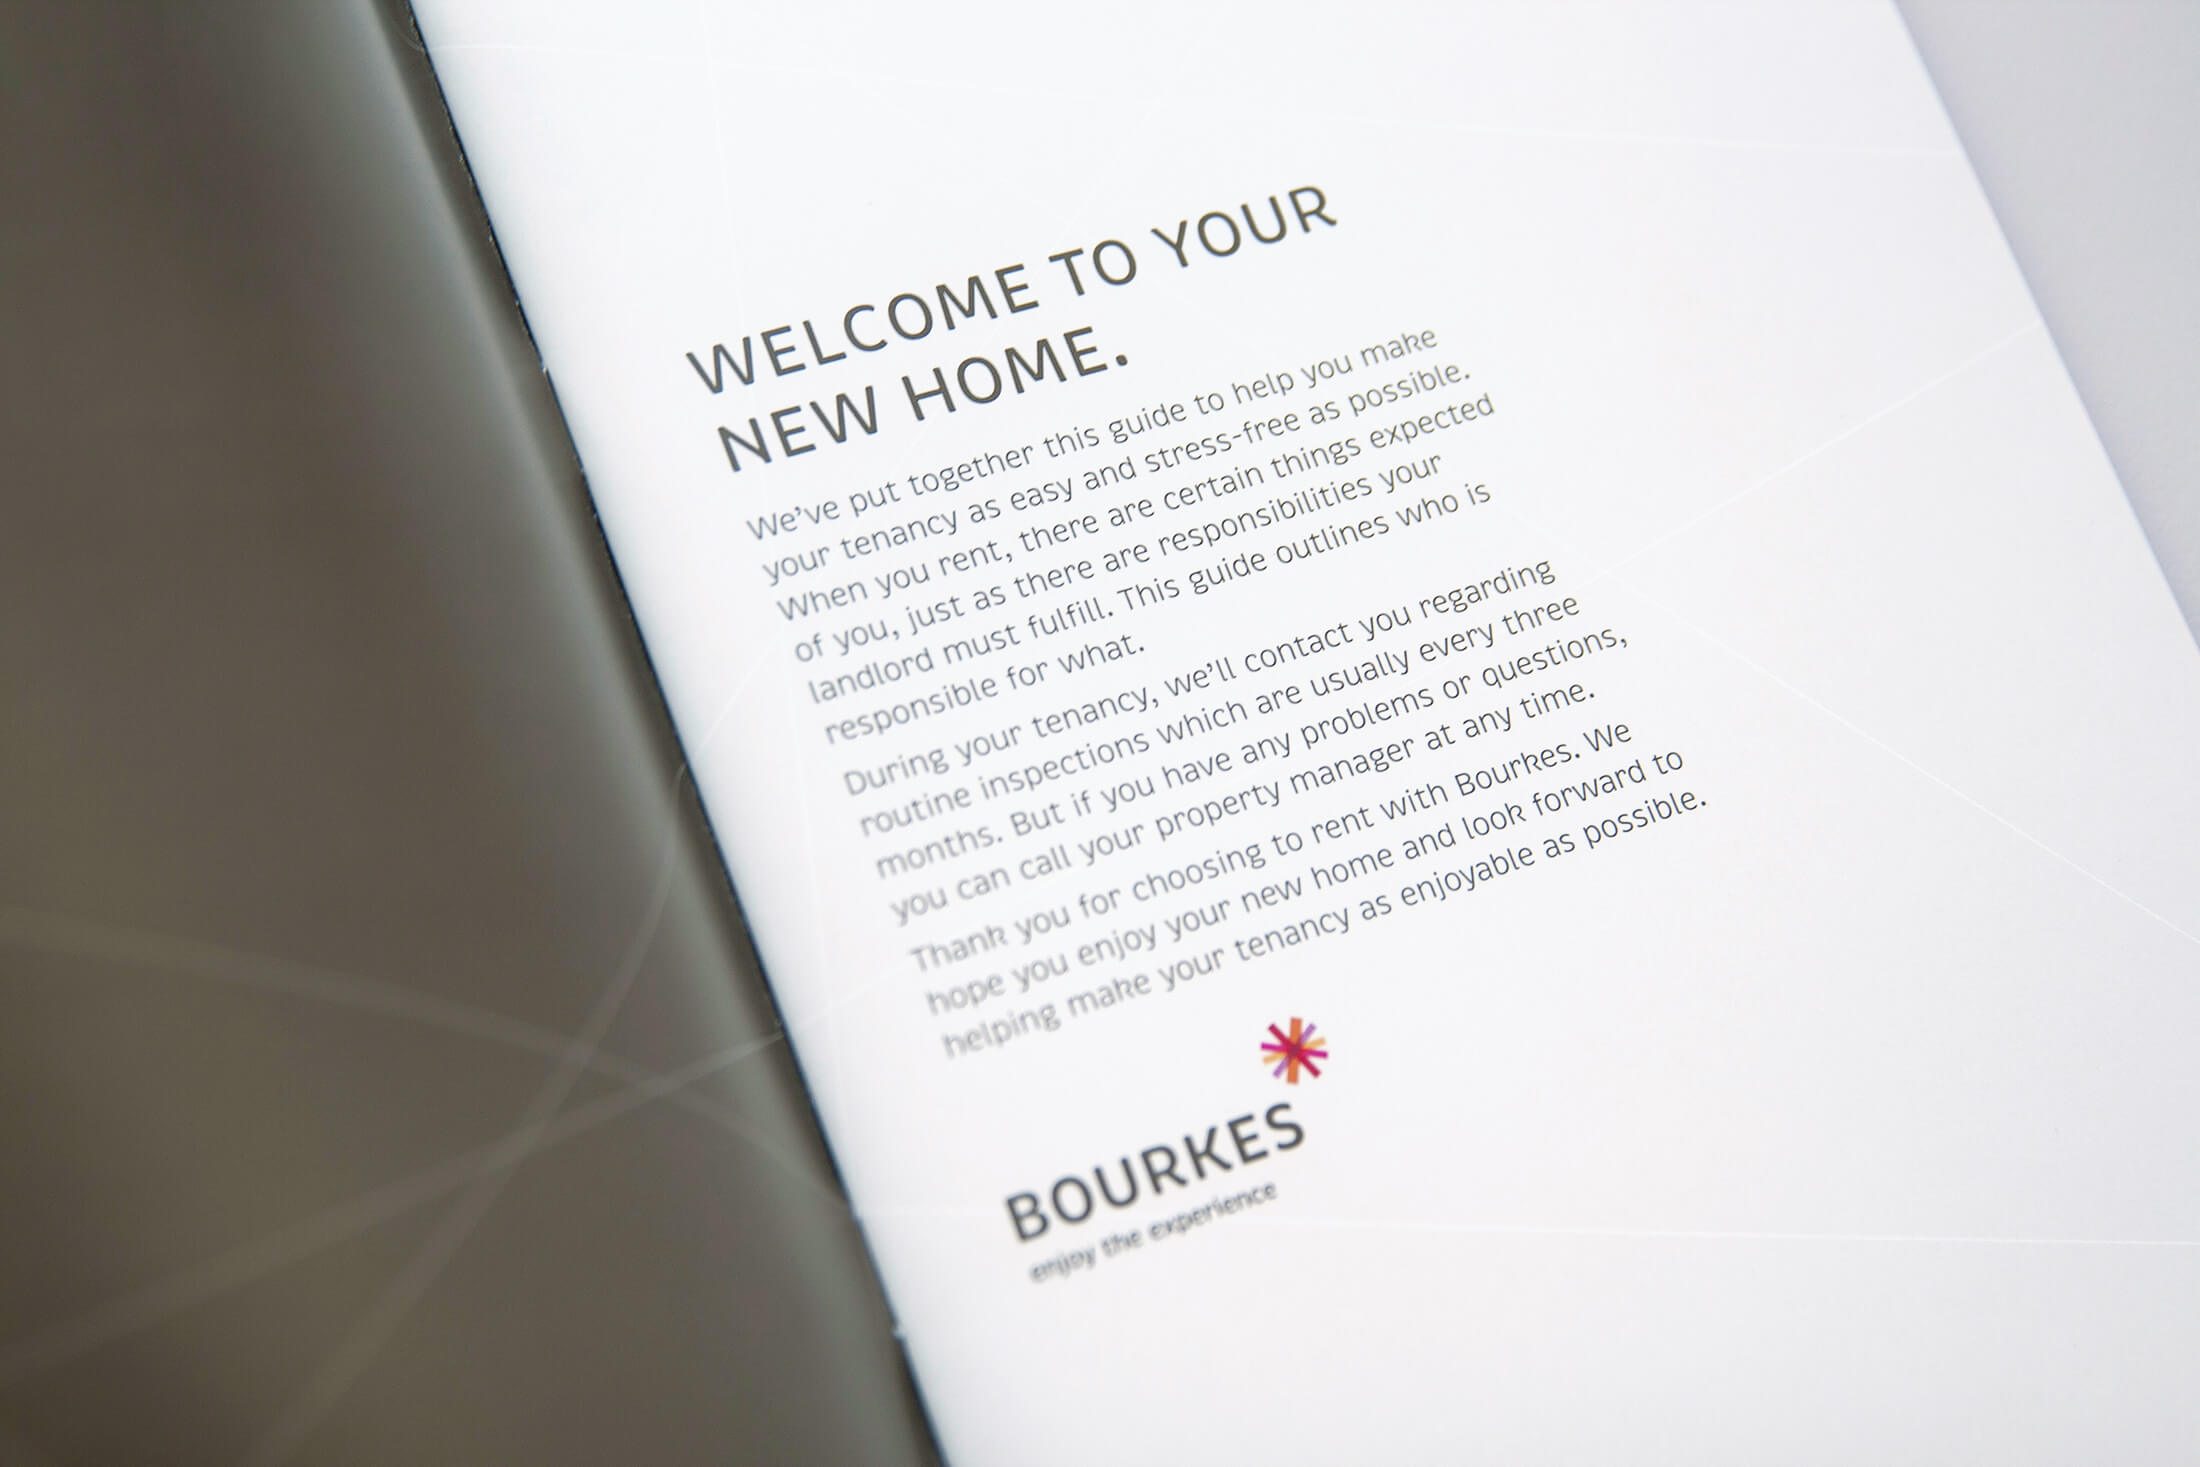 bourkes-realestate-brochure-design-inside2